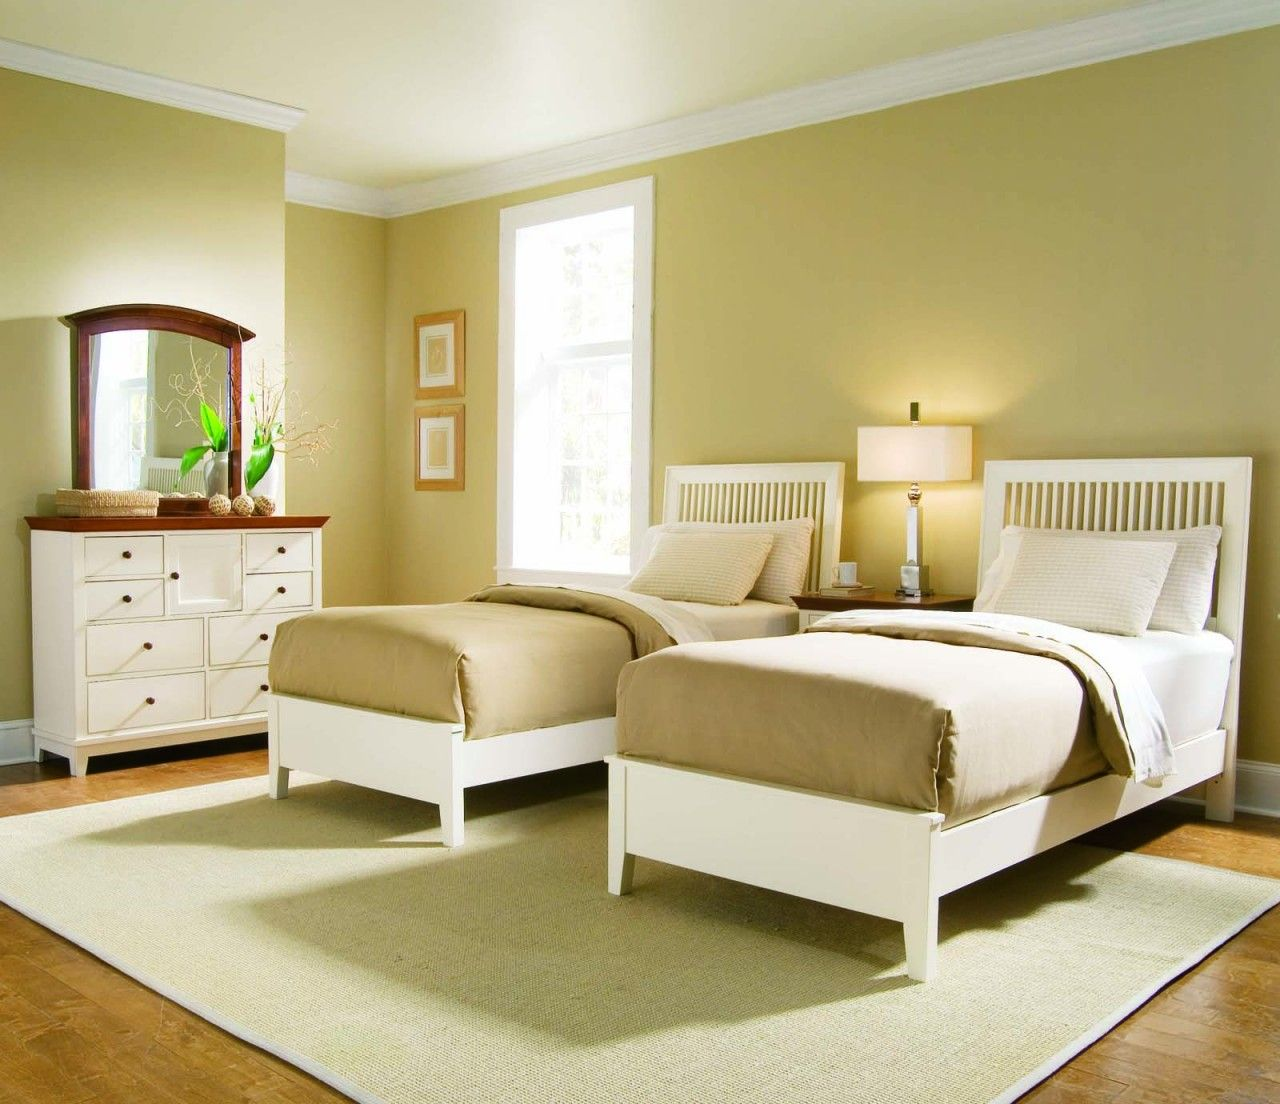 Simple Twin Bedroom Set Idea For Girls With Golden Brown Wall Paint Color And Fake Wood Flooring